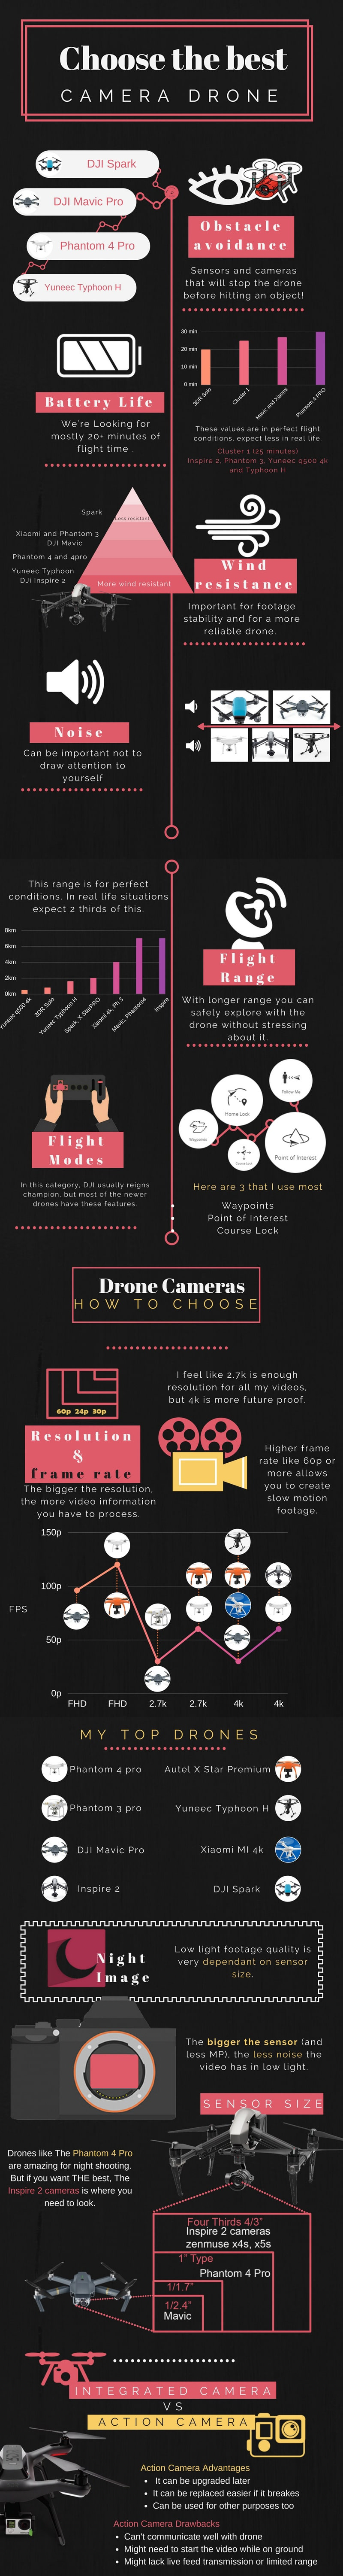 How To Pick A Camera Drone - Infographic